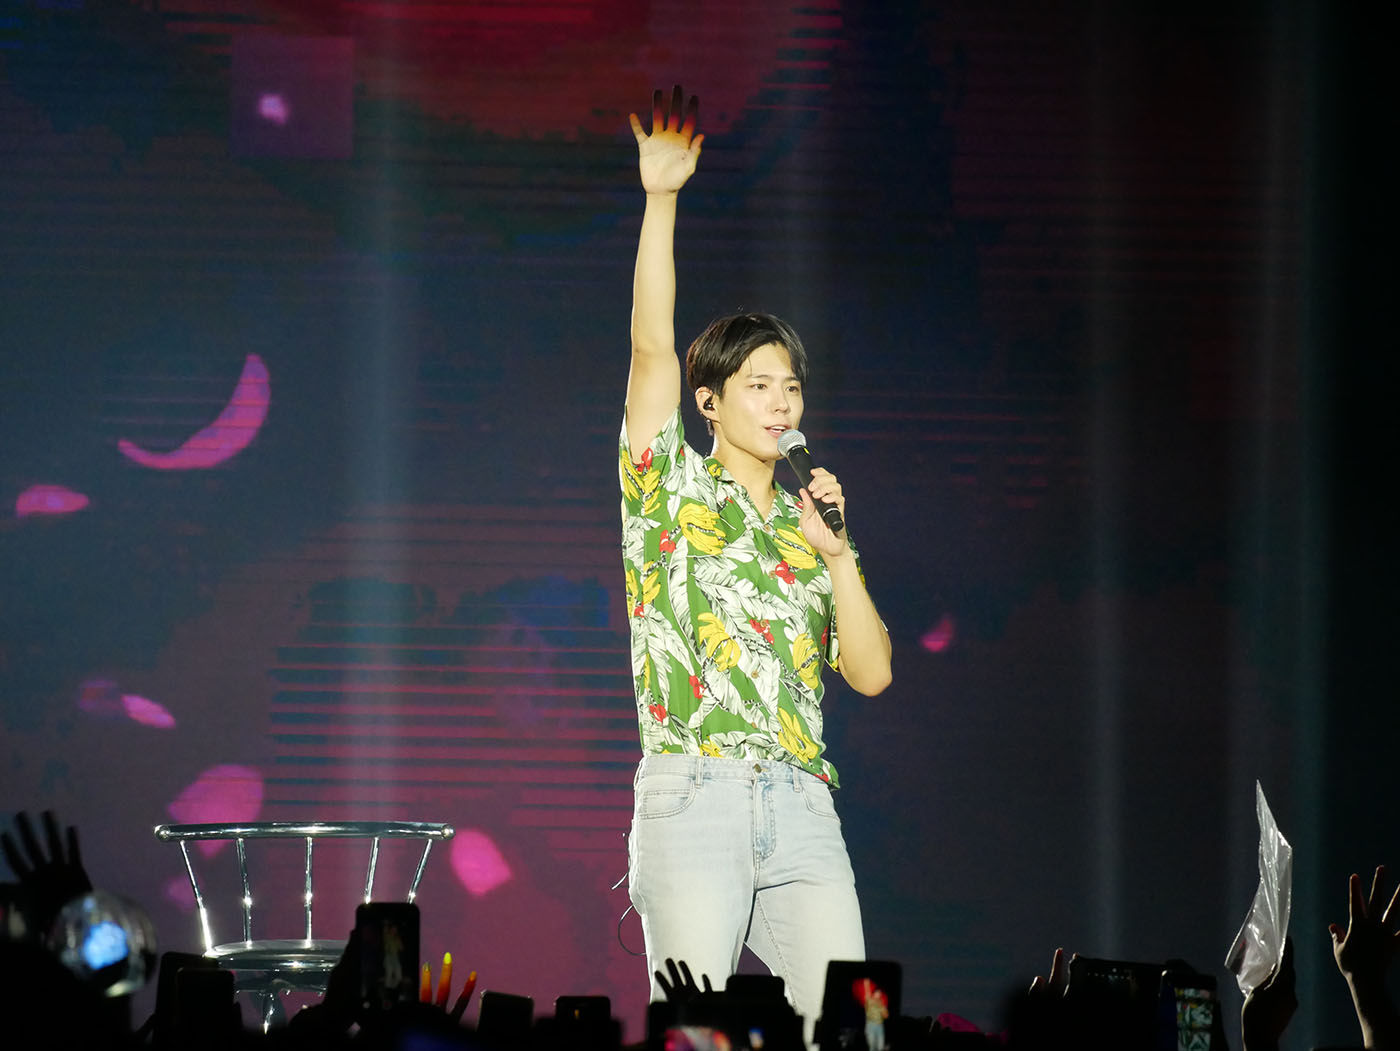 Born to perform: Park Bo-gum sang K-pop hits and his own songs including the OST from Love in the Moonlight. Photo by Nikko Dizon/Rappler